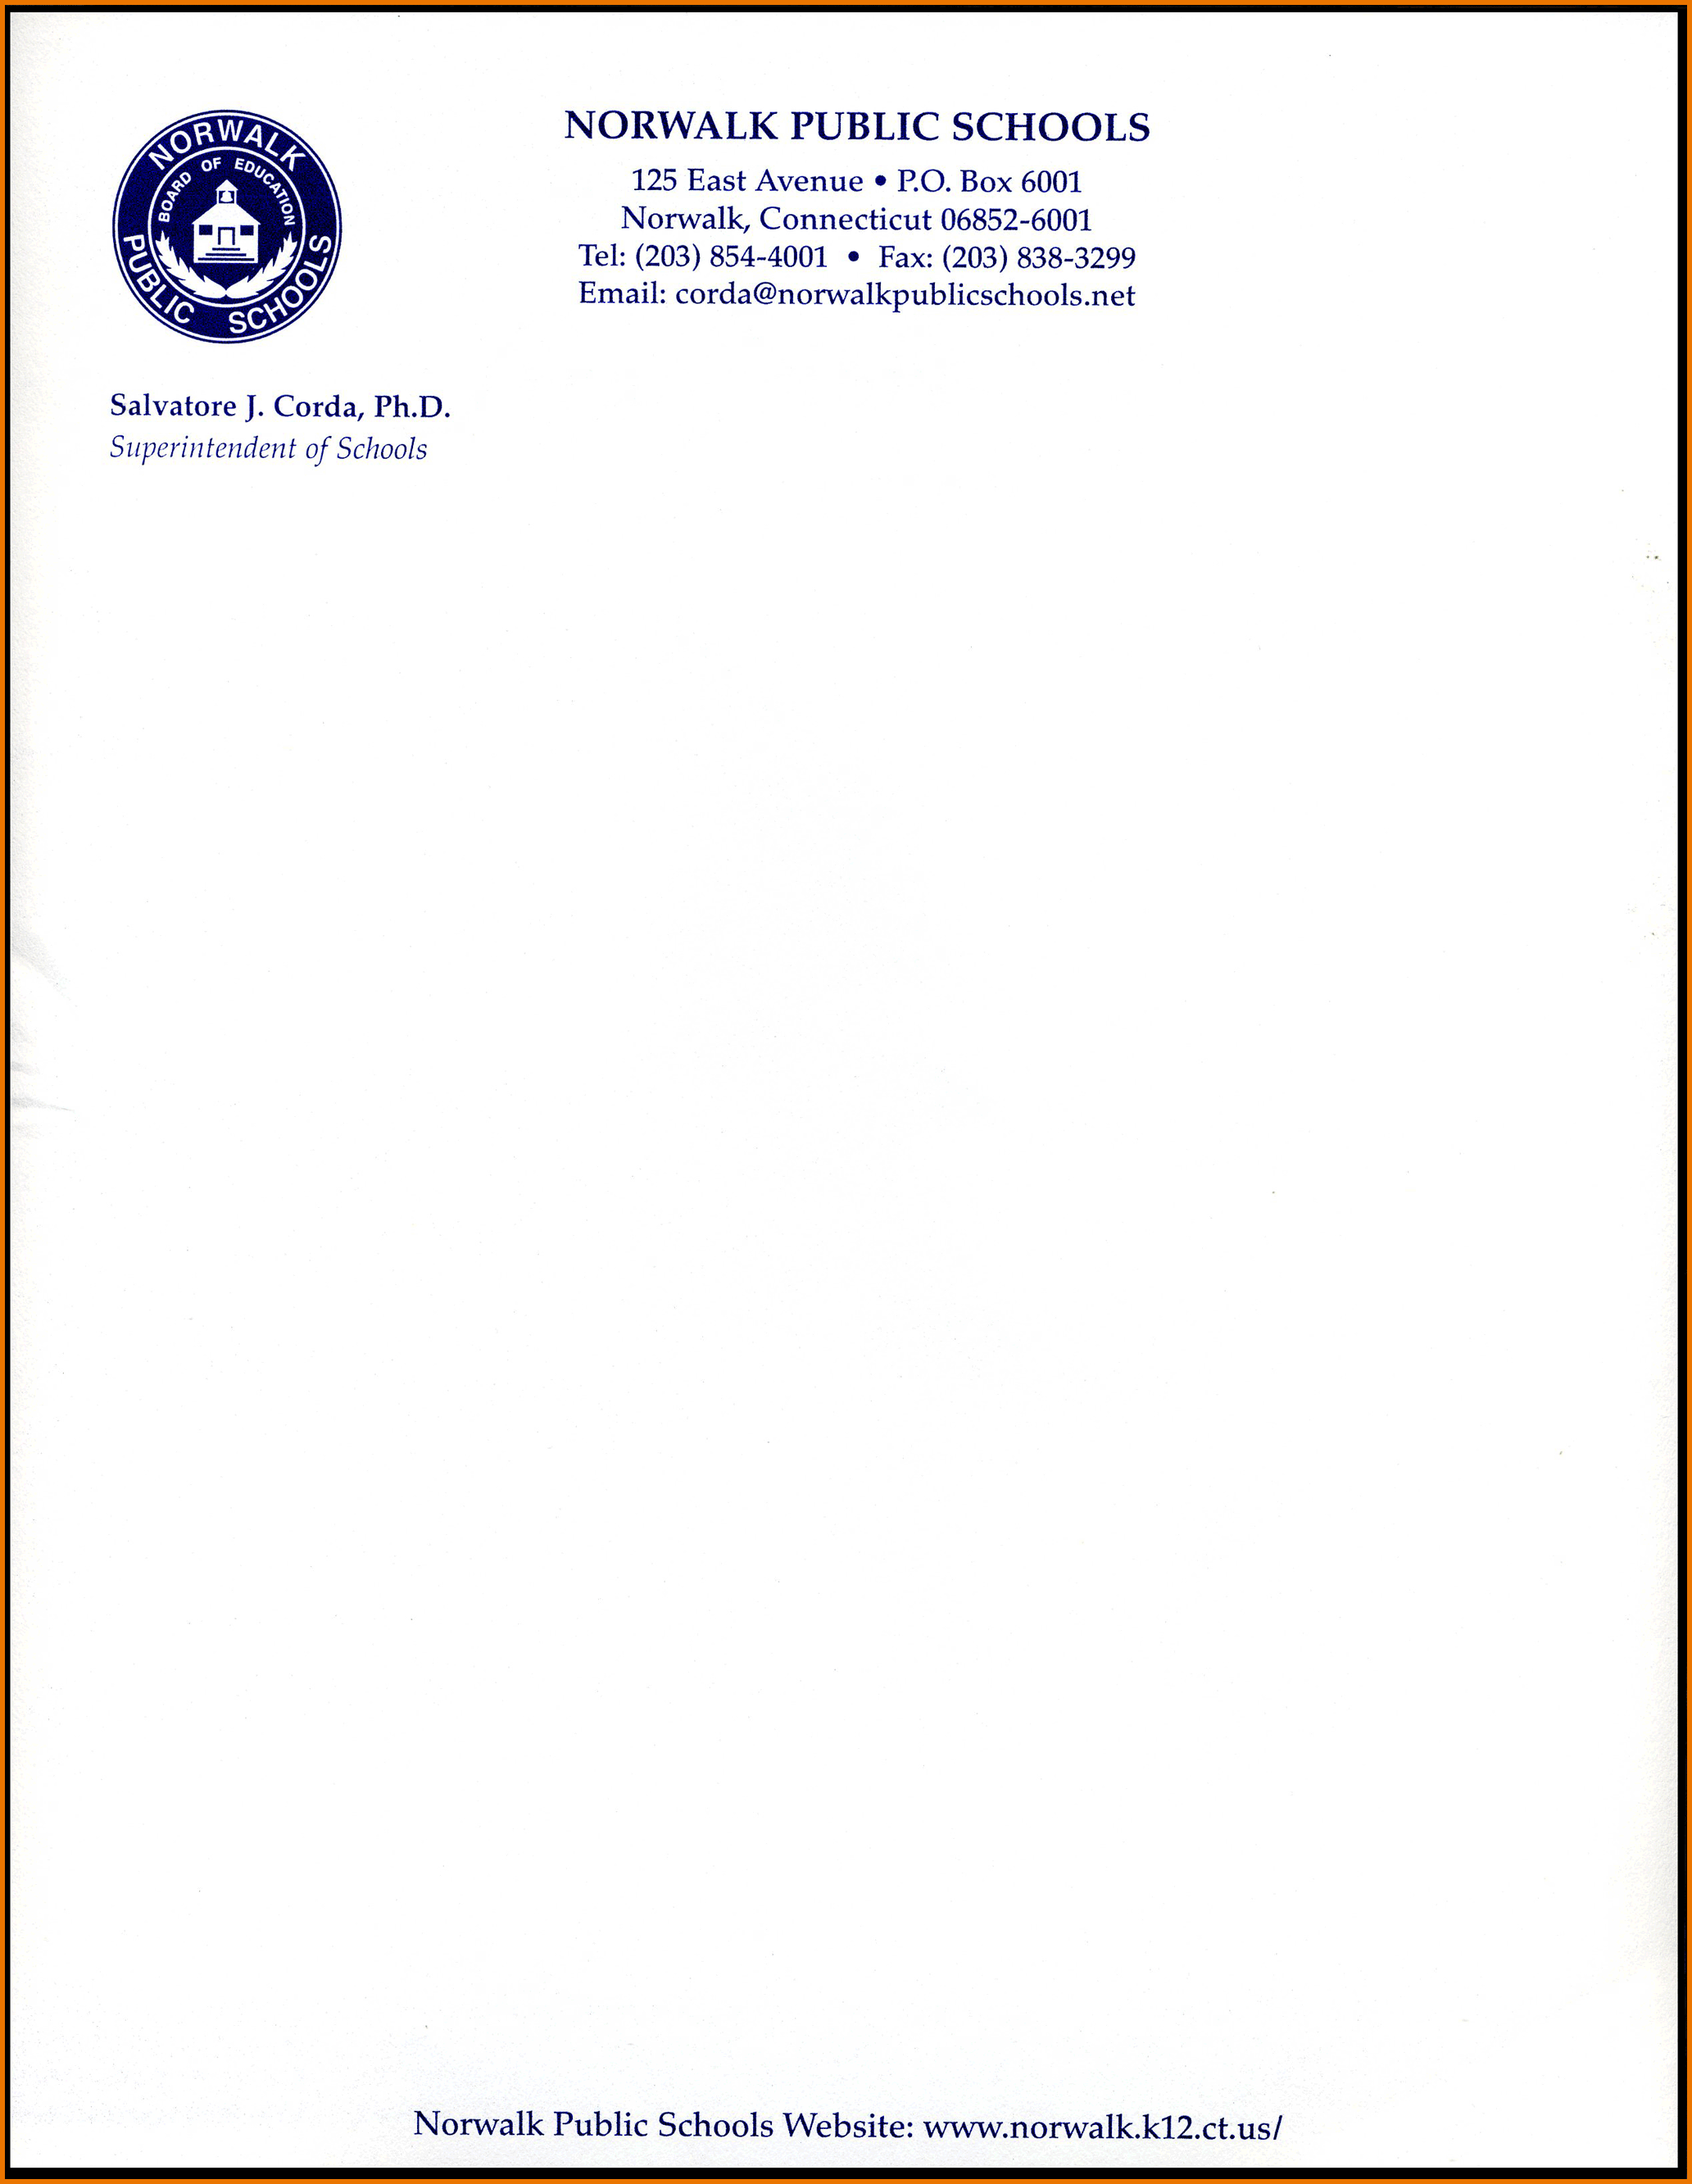 Letterhead Layout.Letterhead.311133549.png | Scope Of Work Template